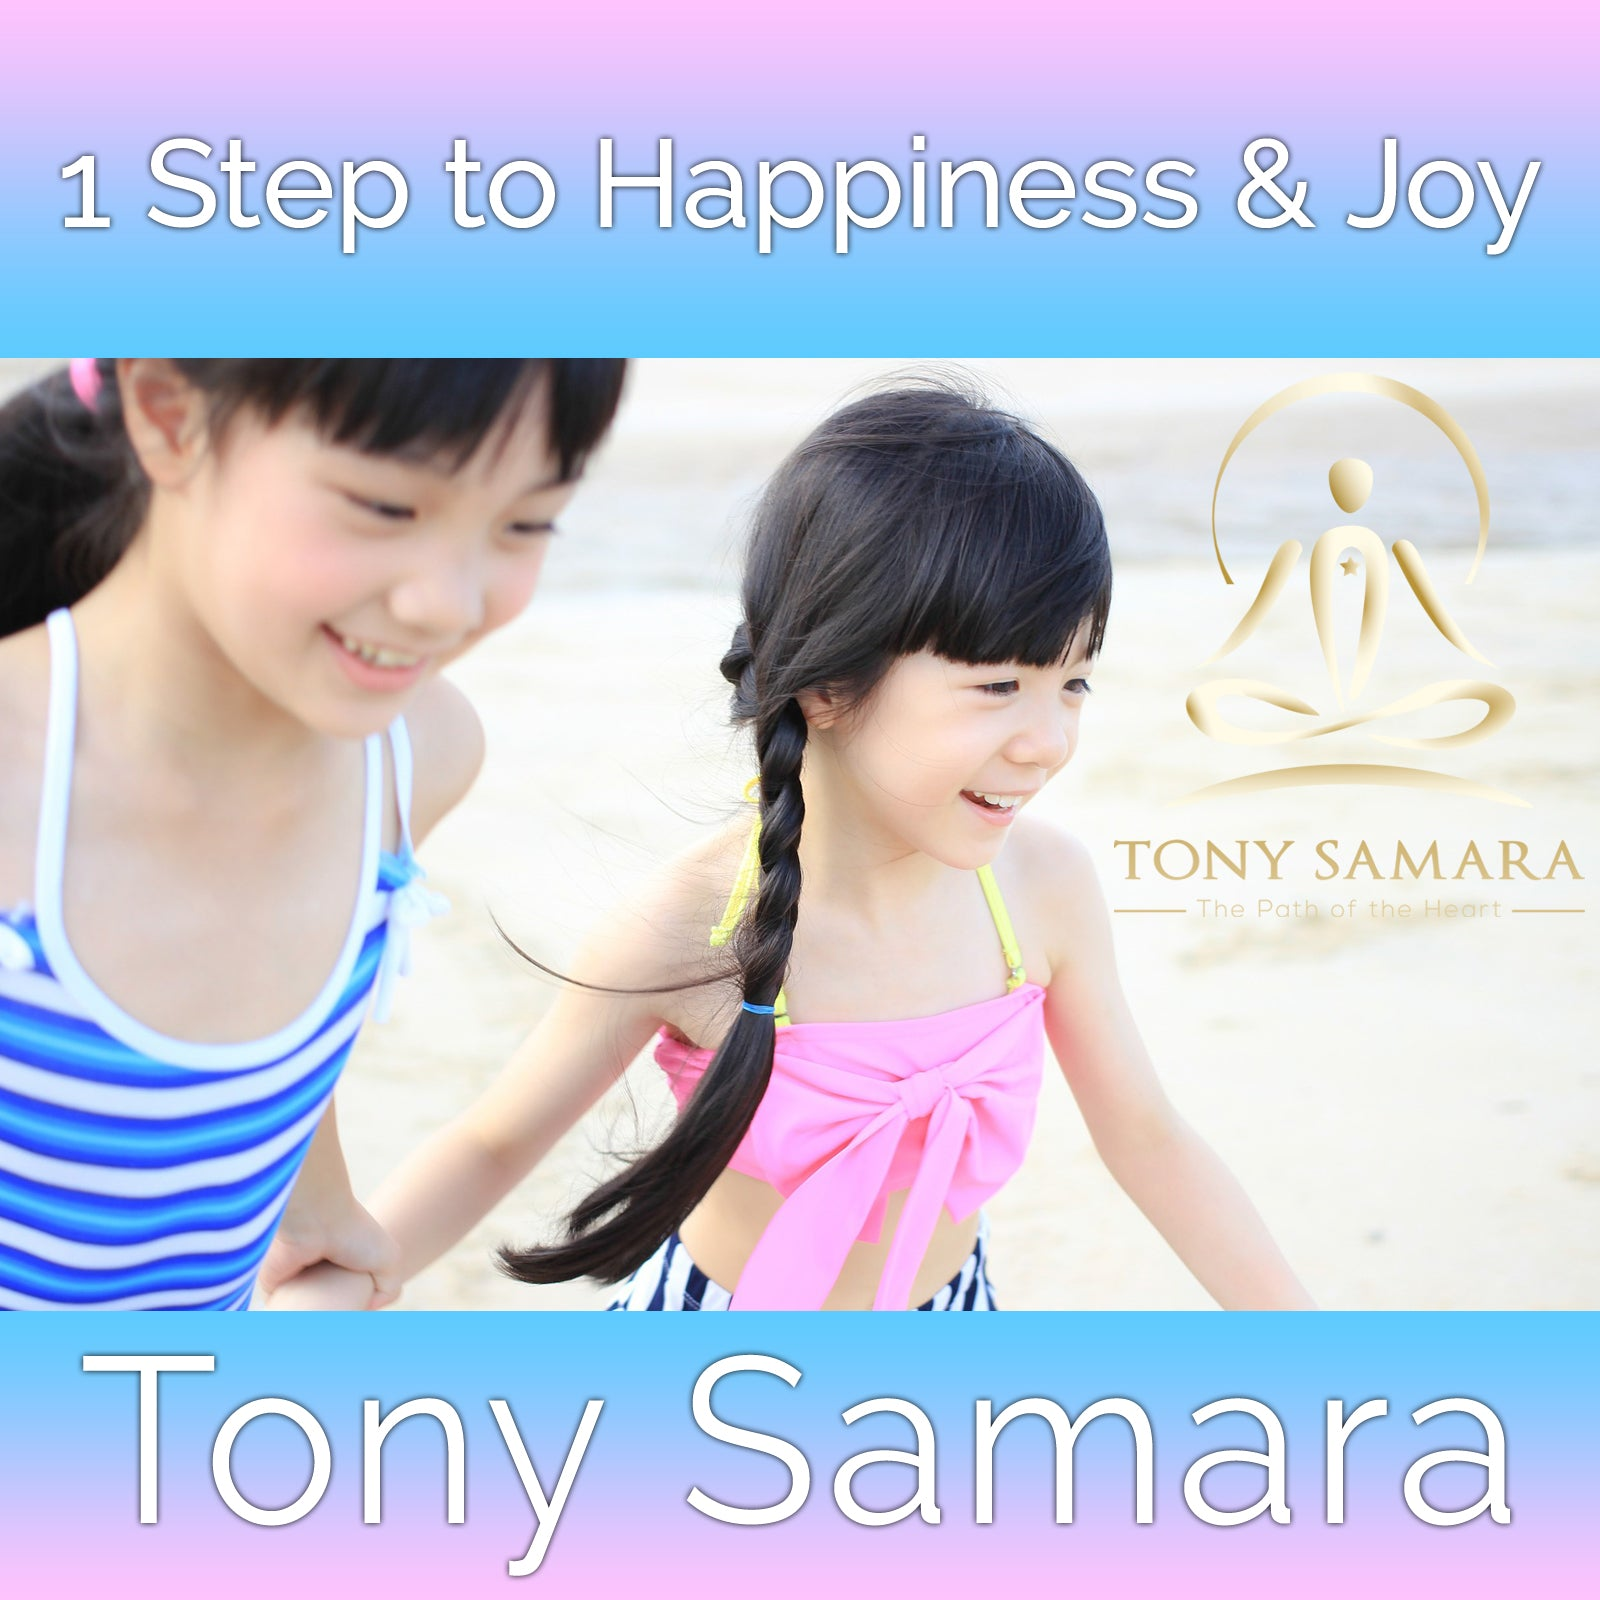 1 Step to Happiness & Joy (MP3 Audio Download) - Tony Samara Meditation